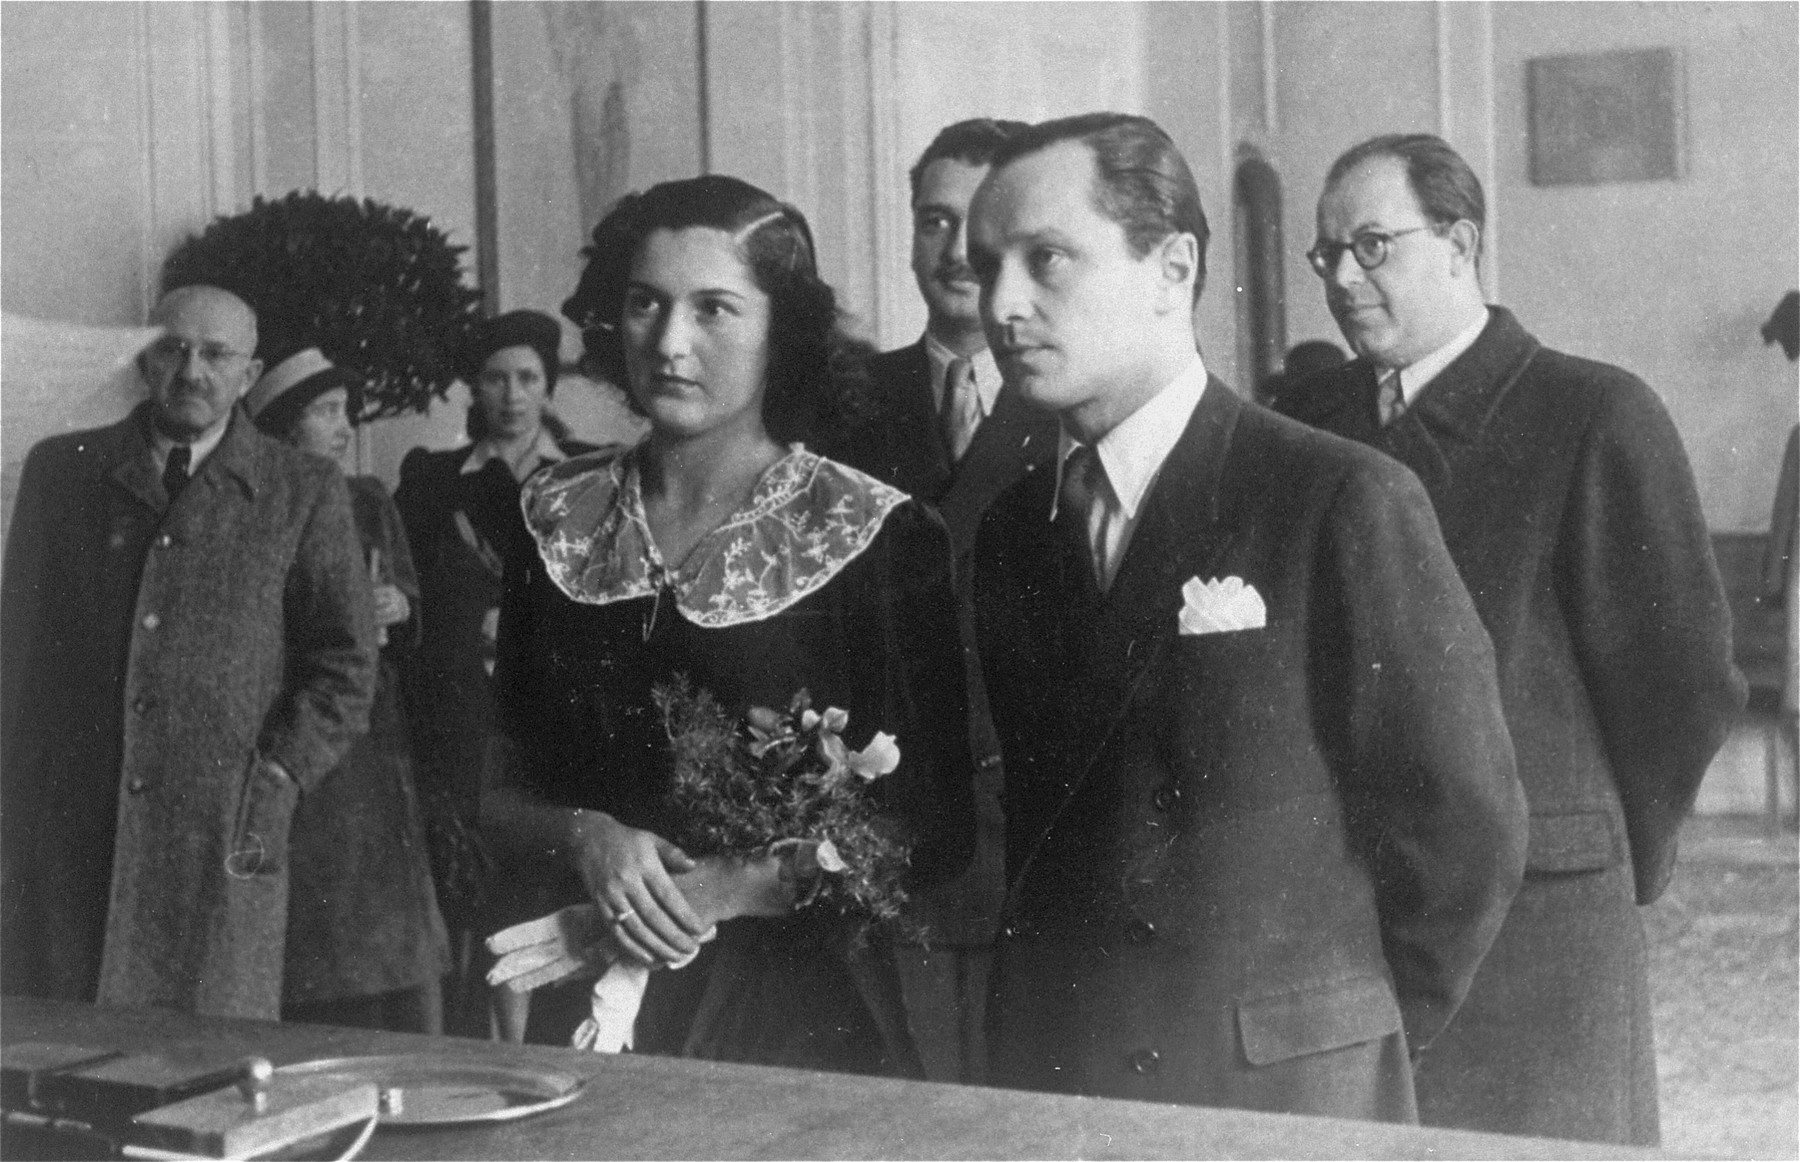 The marriage of Czech-Jewish survivors Frantisek Kohn and Gertie Gans before a judge at the city hall in Prague, image courtesy of United States Holocaust Memorial Museum